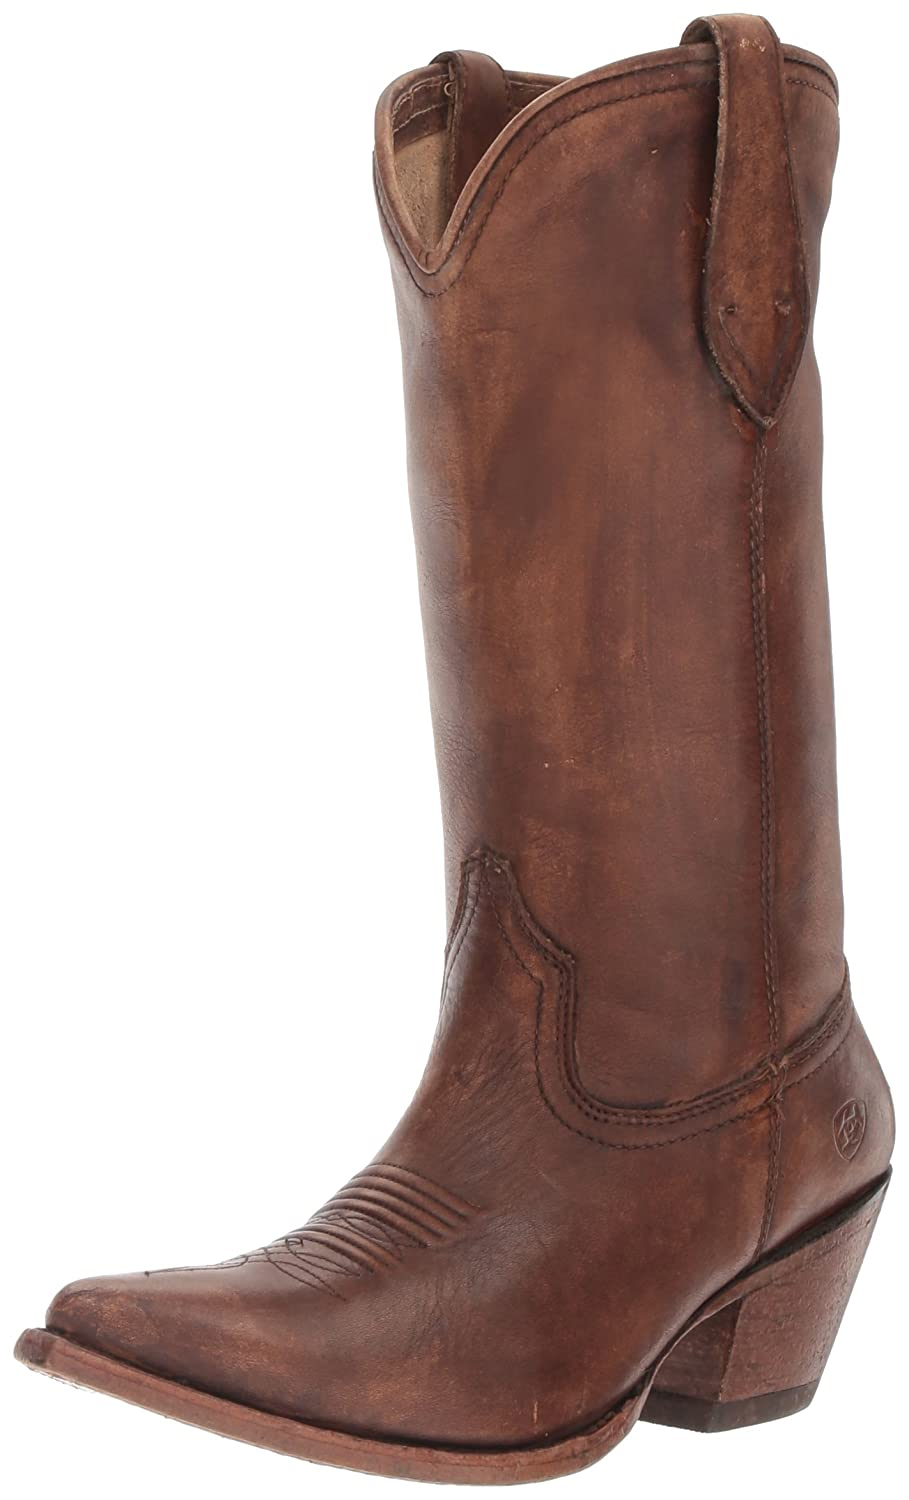 Ariat Women's Josefina Western Cowboy Boot B01L91OE96 Brown 9.5 B(M) US|Naturally Distressed Brown B01L91OE96 23d809